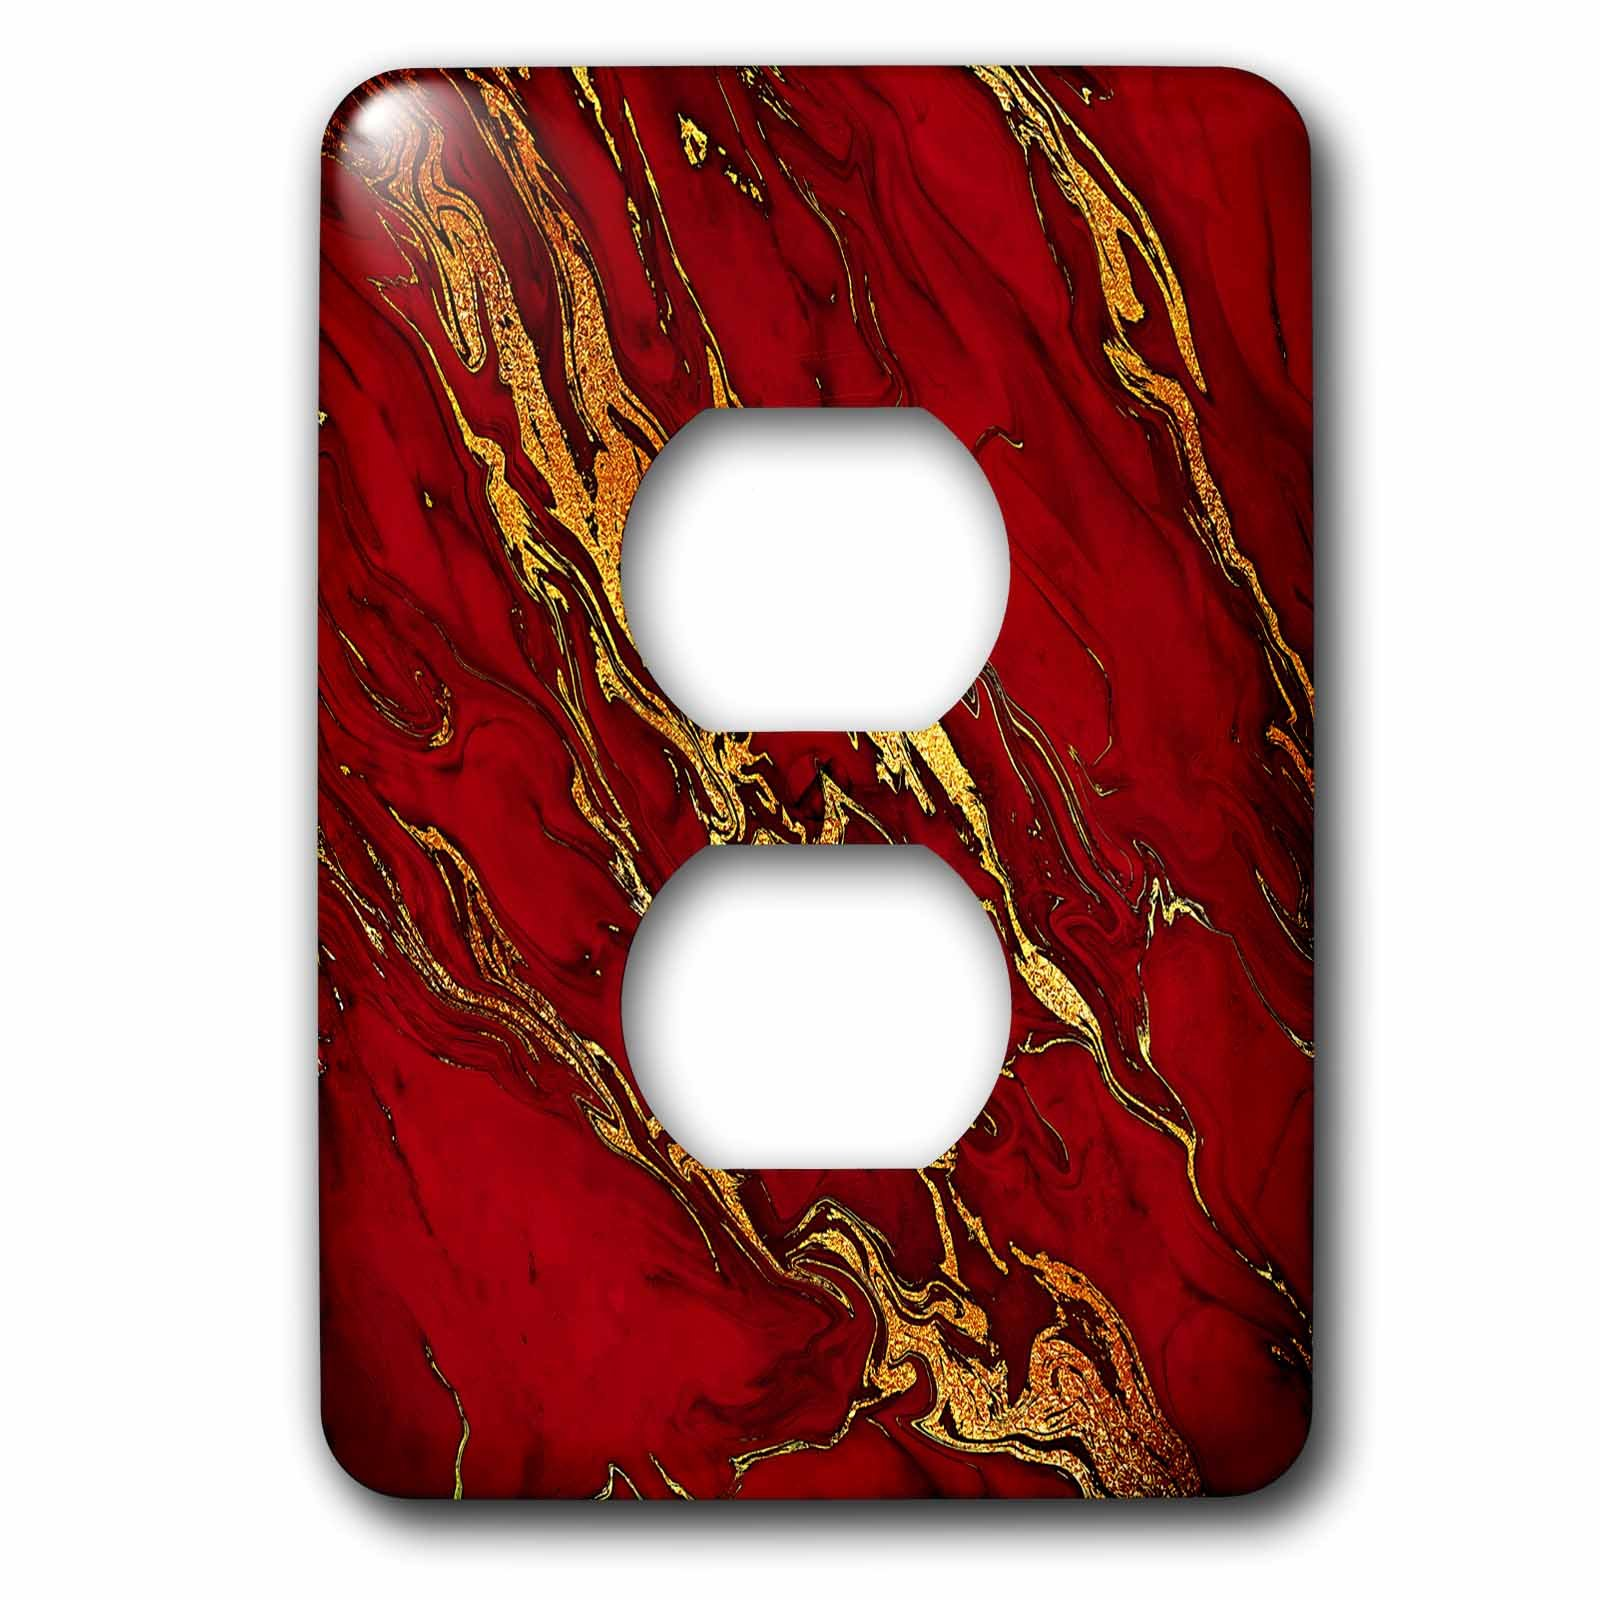 3dRose Uta Naumann Faux Glitter Pattern - Luxury Red Gold Gem Stone Marble Glitter Metallic Faux Print - Light Switch Covers - 2 plug outlet cover (lsp_268833_6)